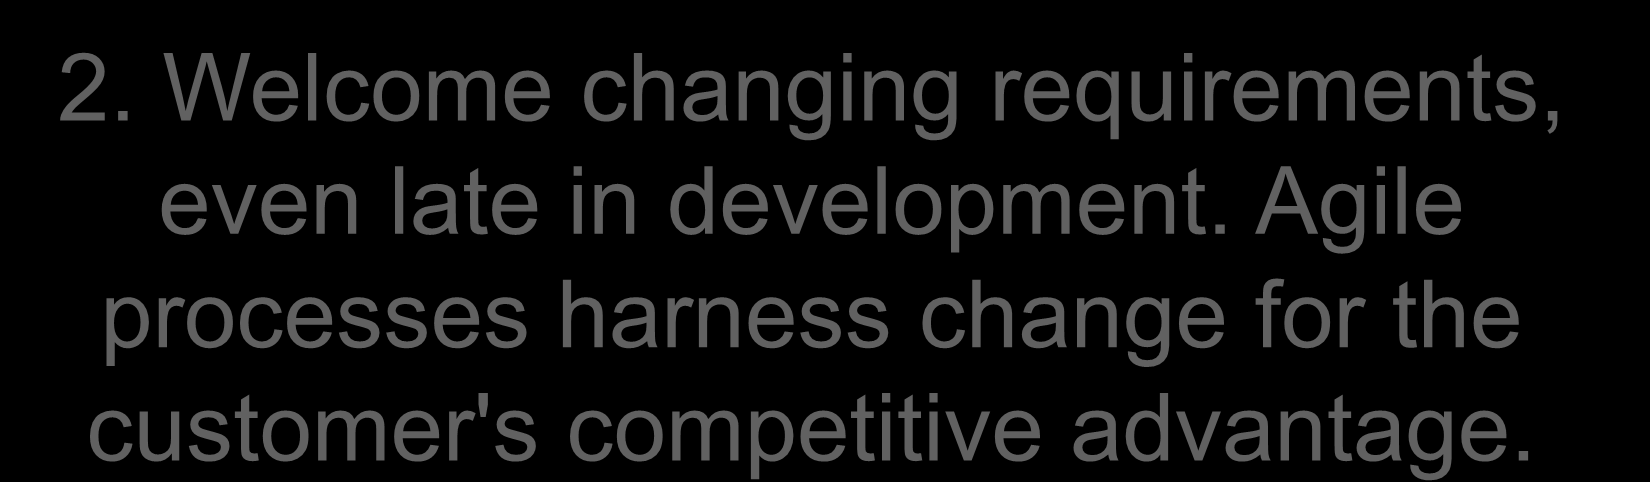 Agile Principles 2. Welcome changing requirements, even late in development.